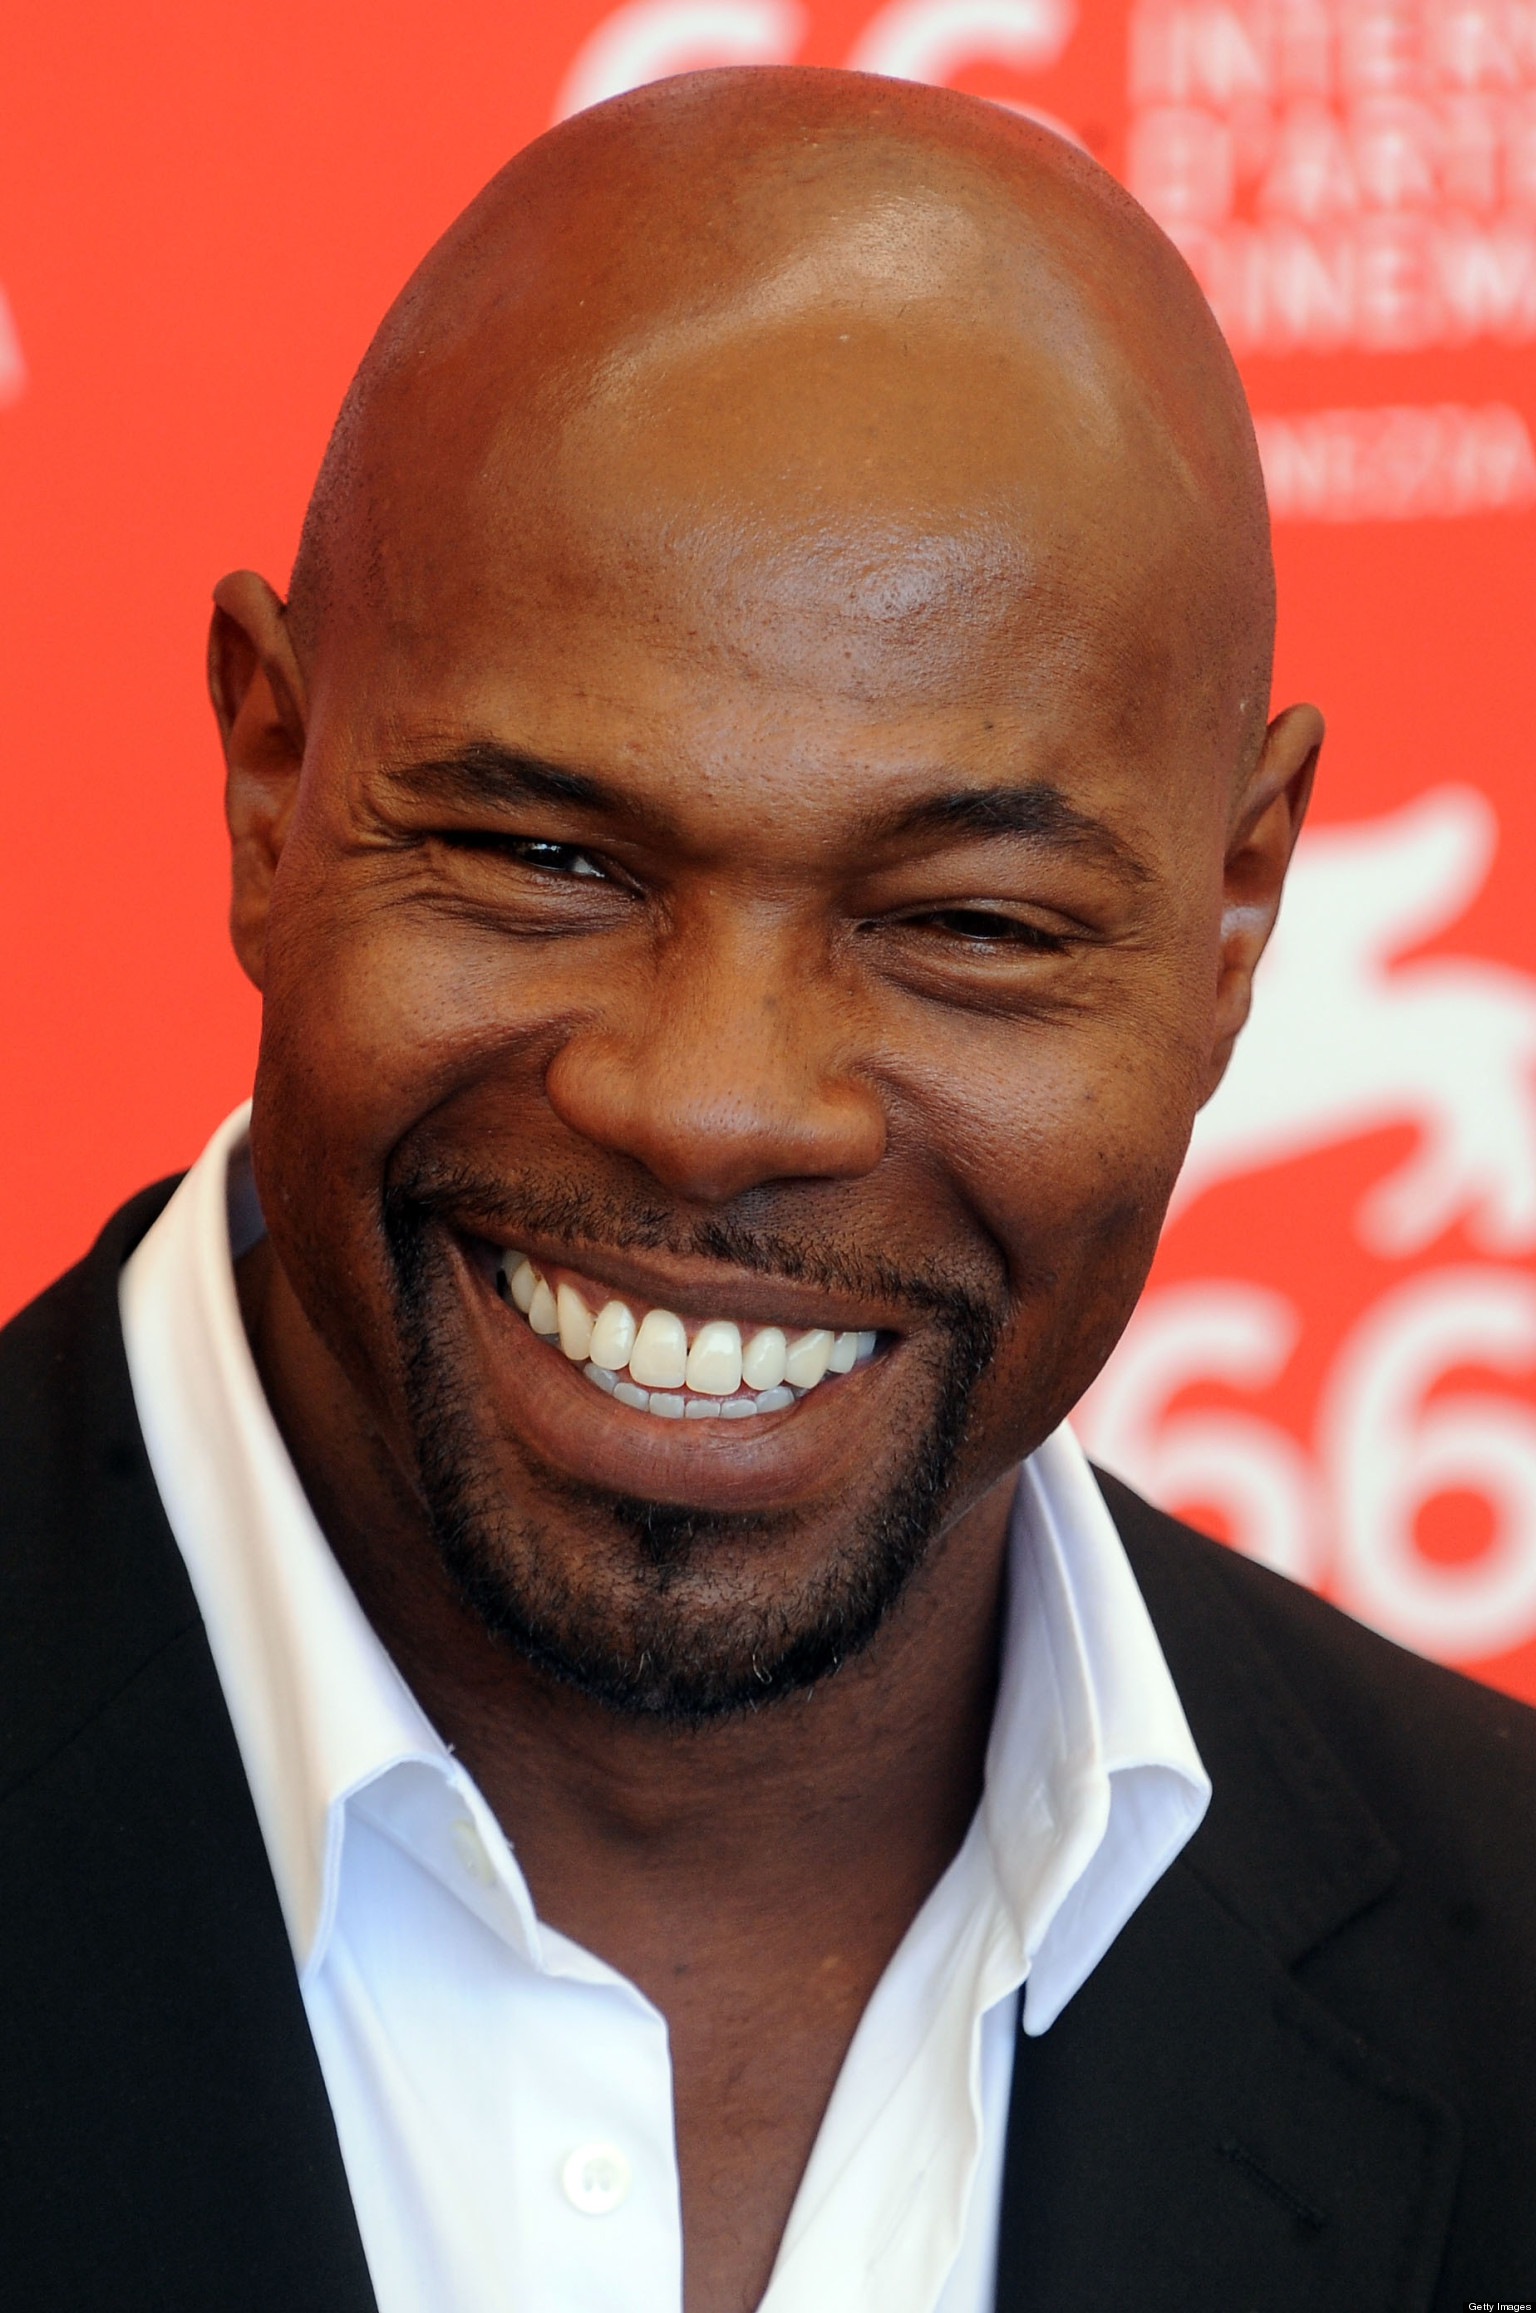 antoine fuqua movies